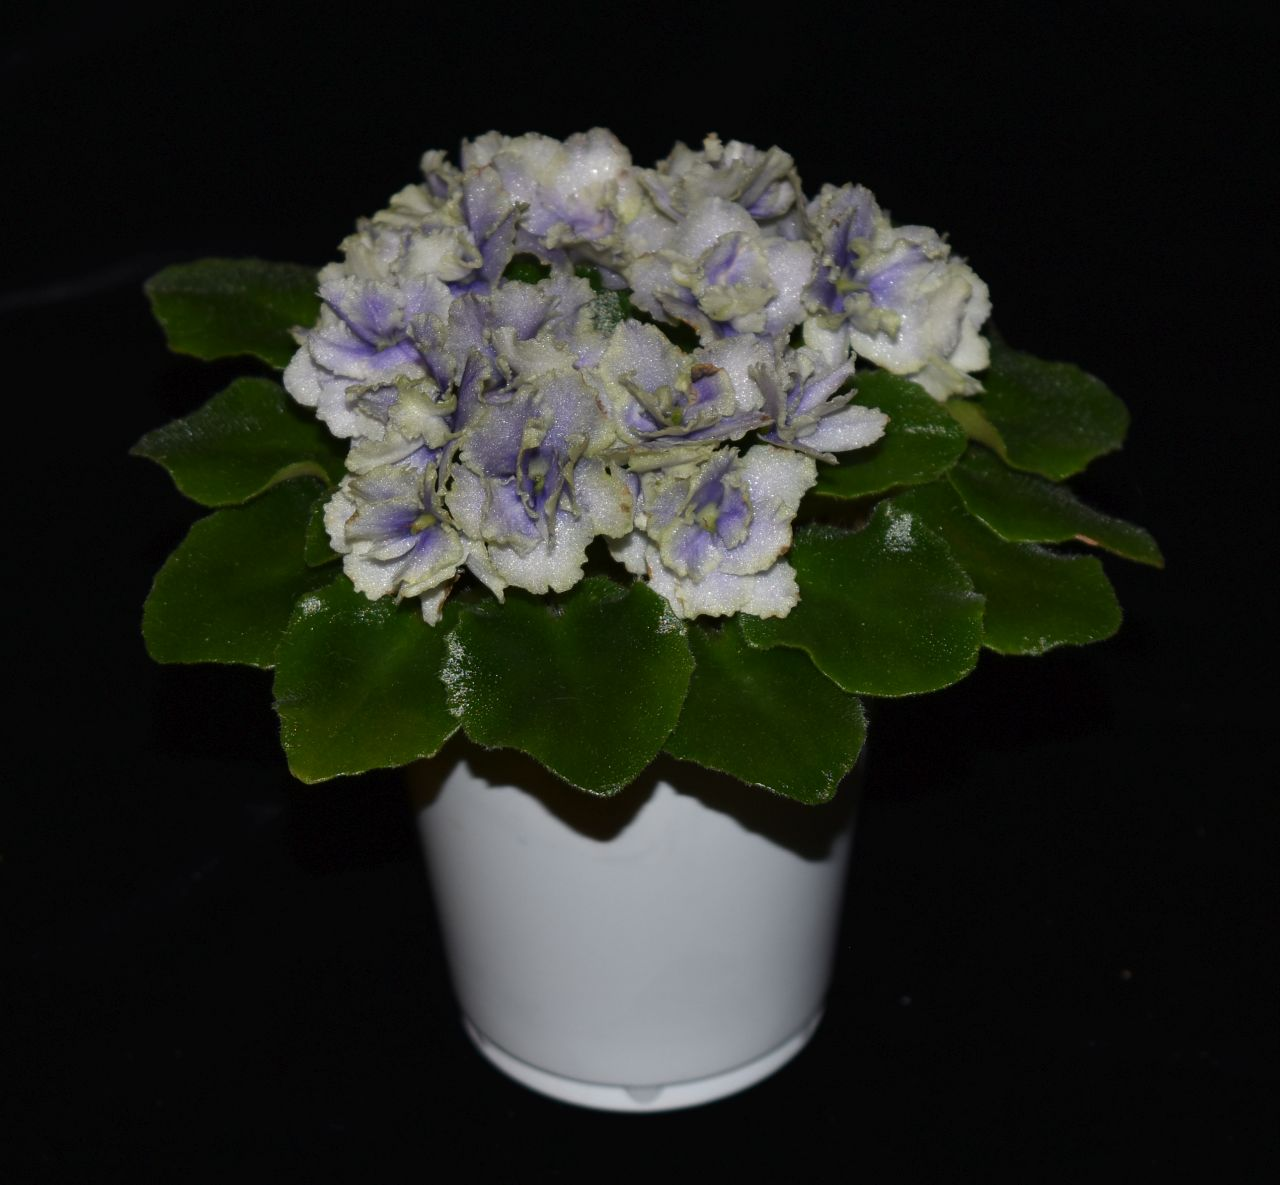 """2017 Convention<br>Old World African Gesneriads in Flower<br>Class 21 – <i>Saintpaulia</i> hybrids or cultivars classified as miniatures (max of 6"""" diameter)"""